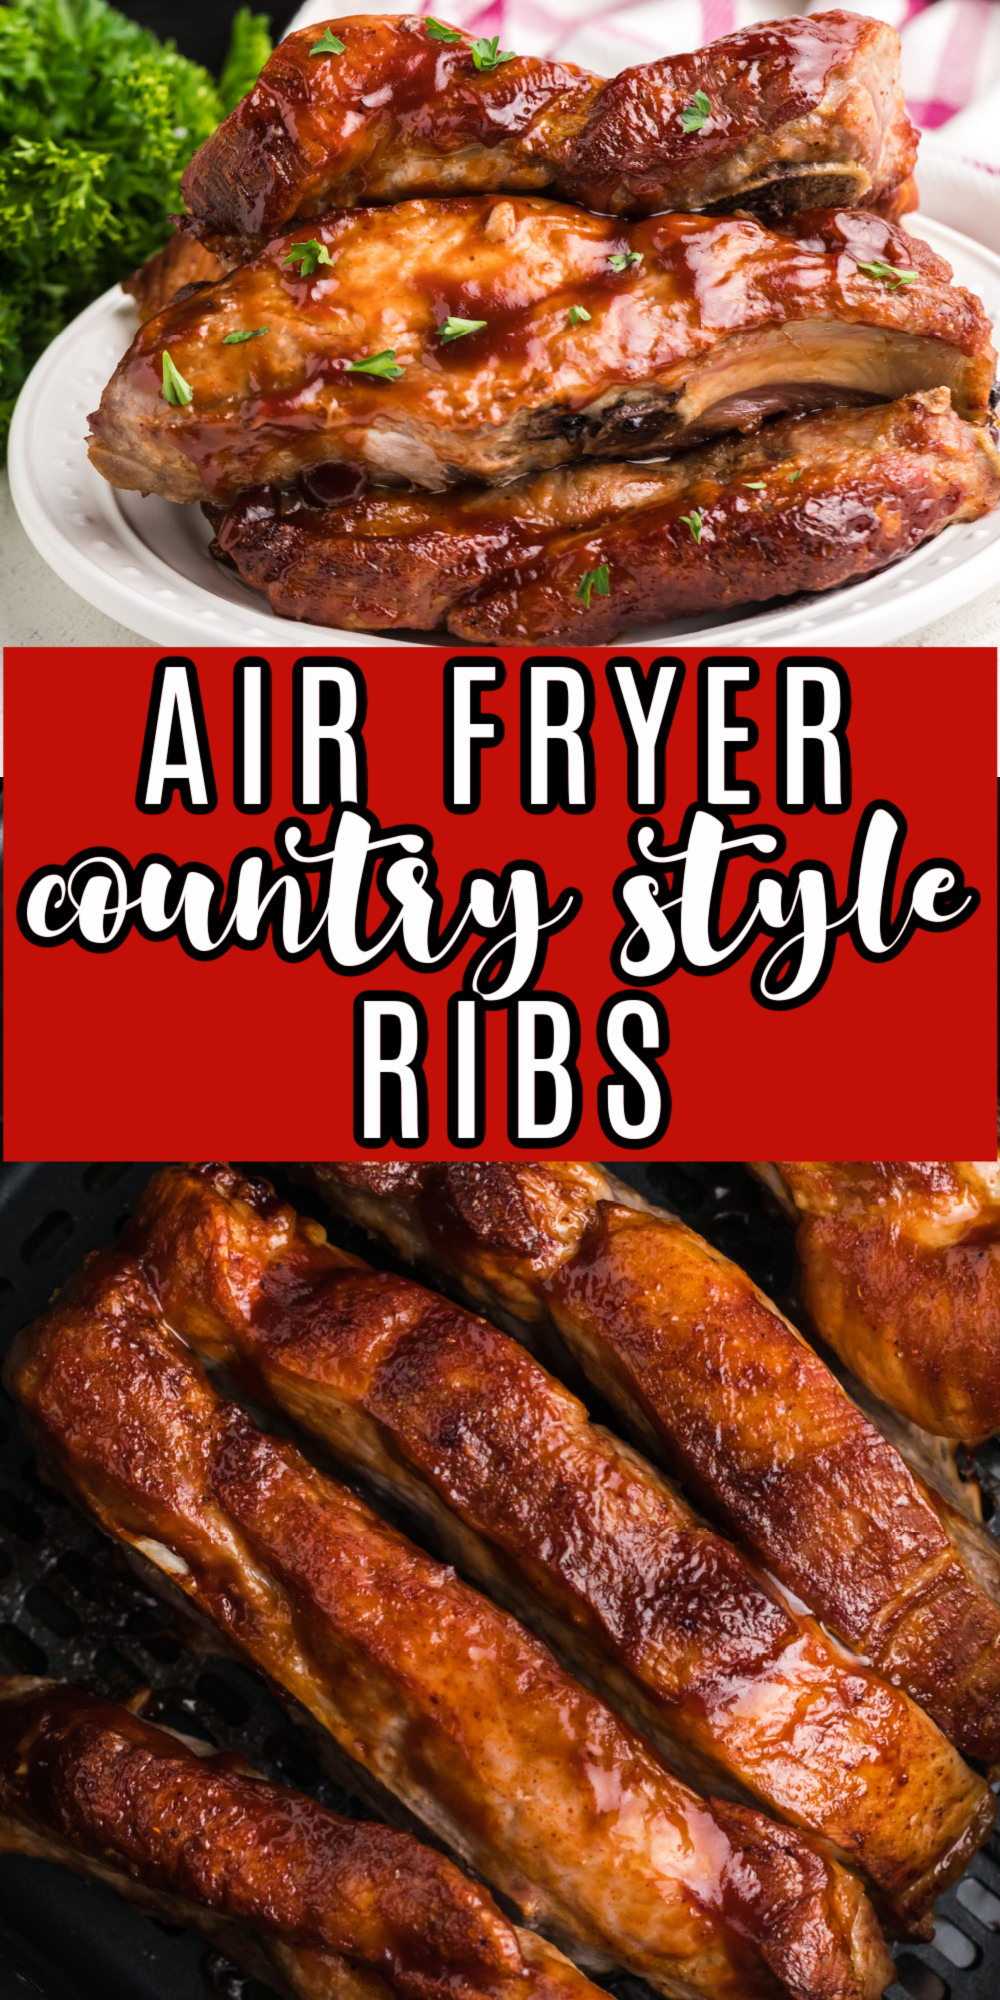 These Air Fryer Country Style Ribs are full of tender, juicy, flavors. You won't believe how fast this dish comes together. Made with thick, country-style ribs, light seasoning, and your favorite bbq sauce.